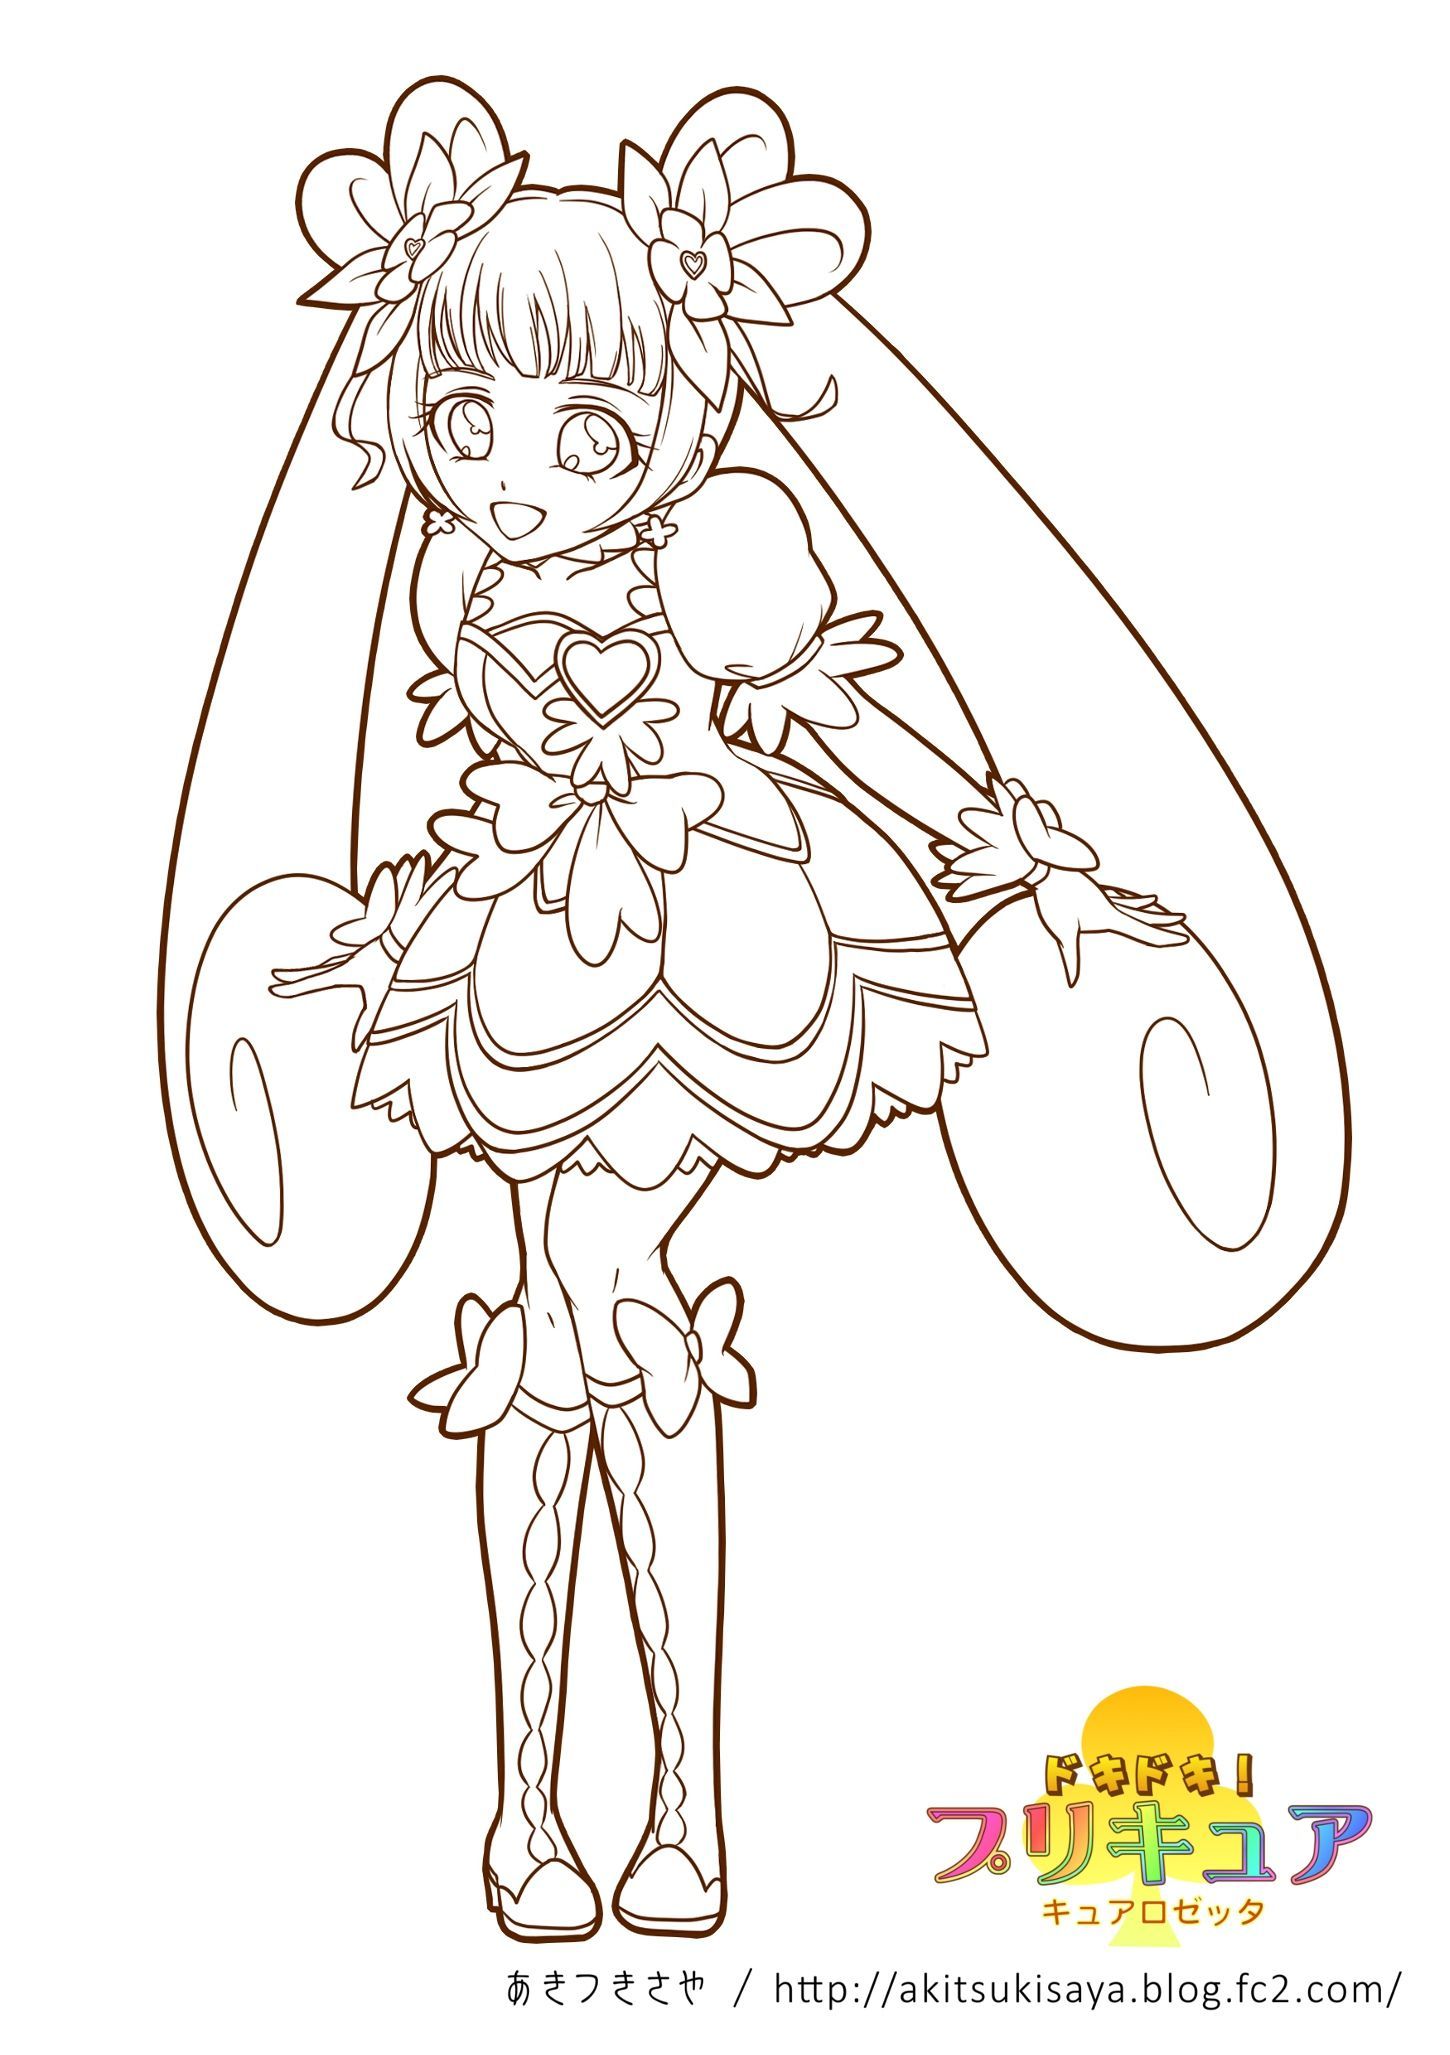 glitter force doki doki coloring pages Doki Puri Nuri / Coloring Pages | Coloring Pages *Deviant Artists  glitter force doki doki coloring pages